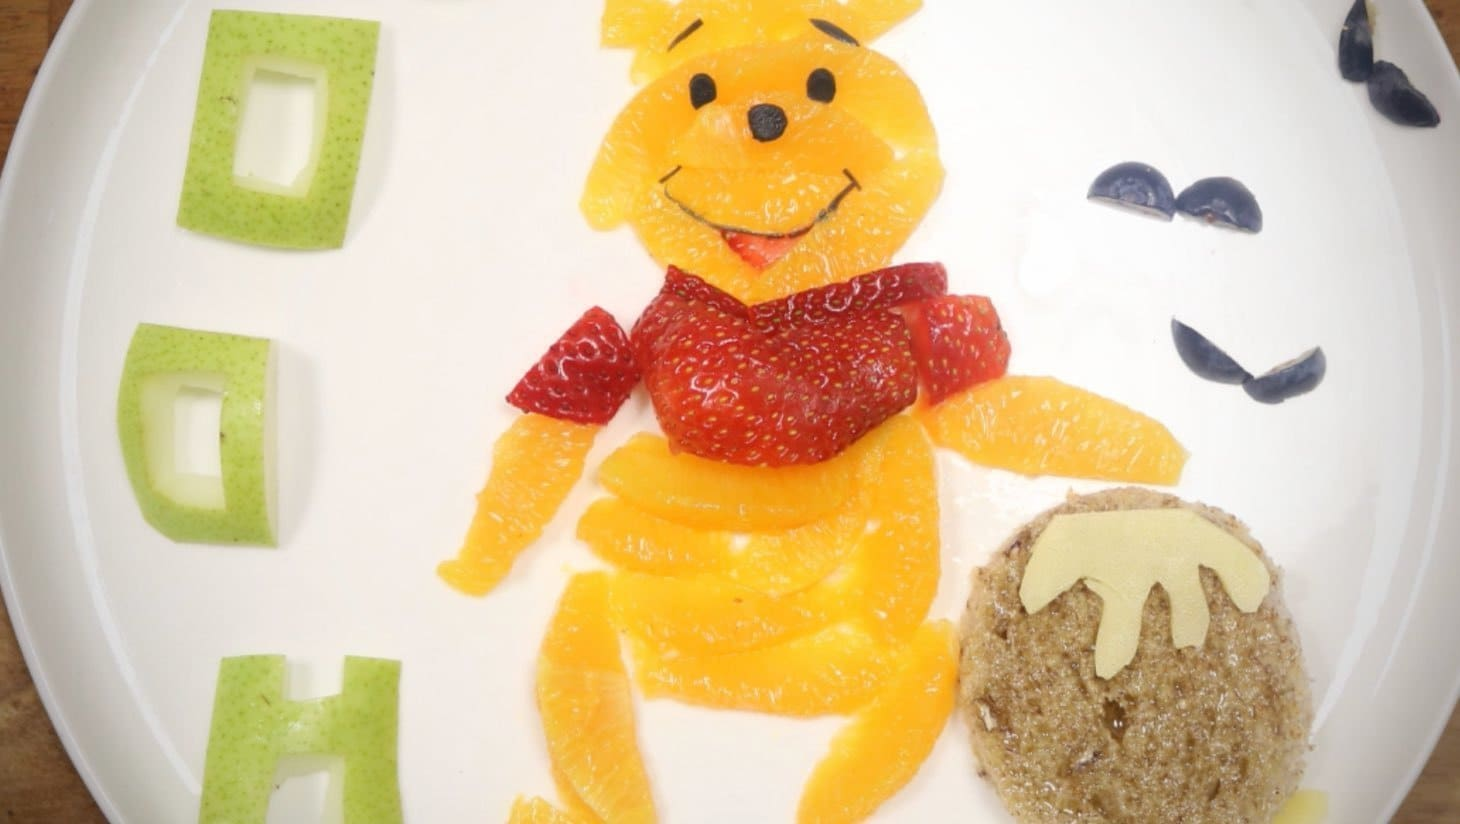 Winnie the Pooh made out of fruit